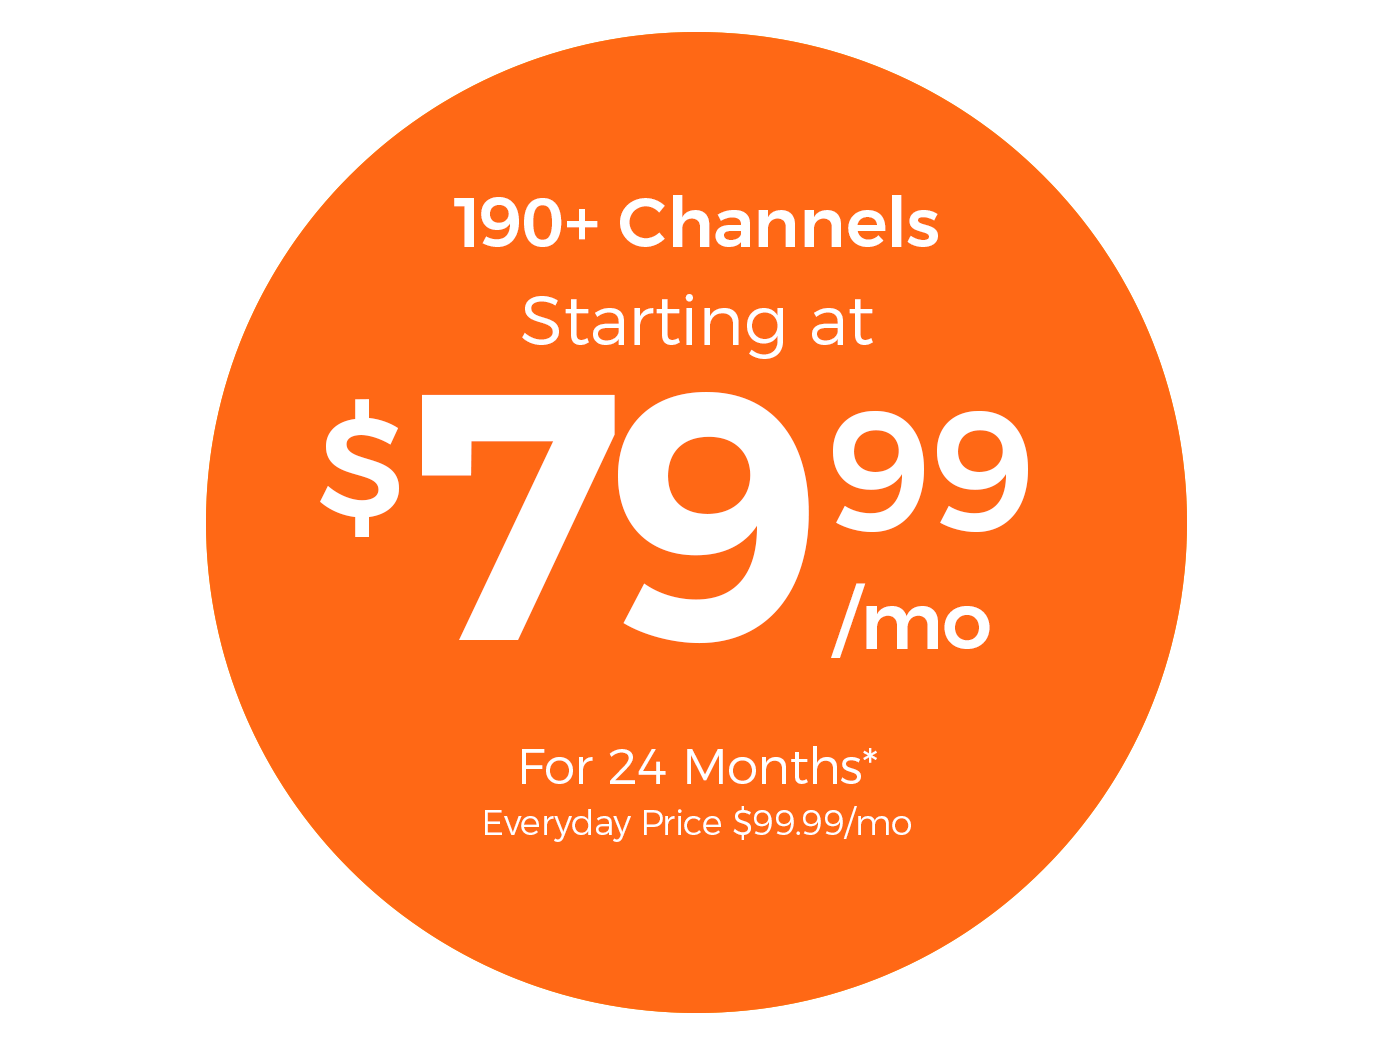 190+ Channels Starting at $79.99/mo For 24 Months* Everyday Price $99.99/mo